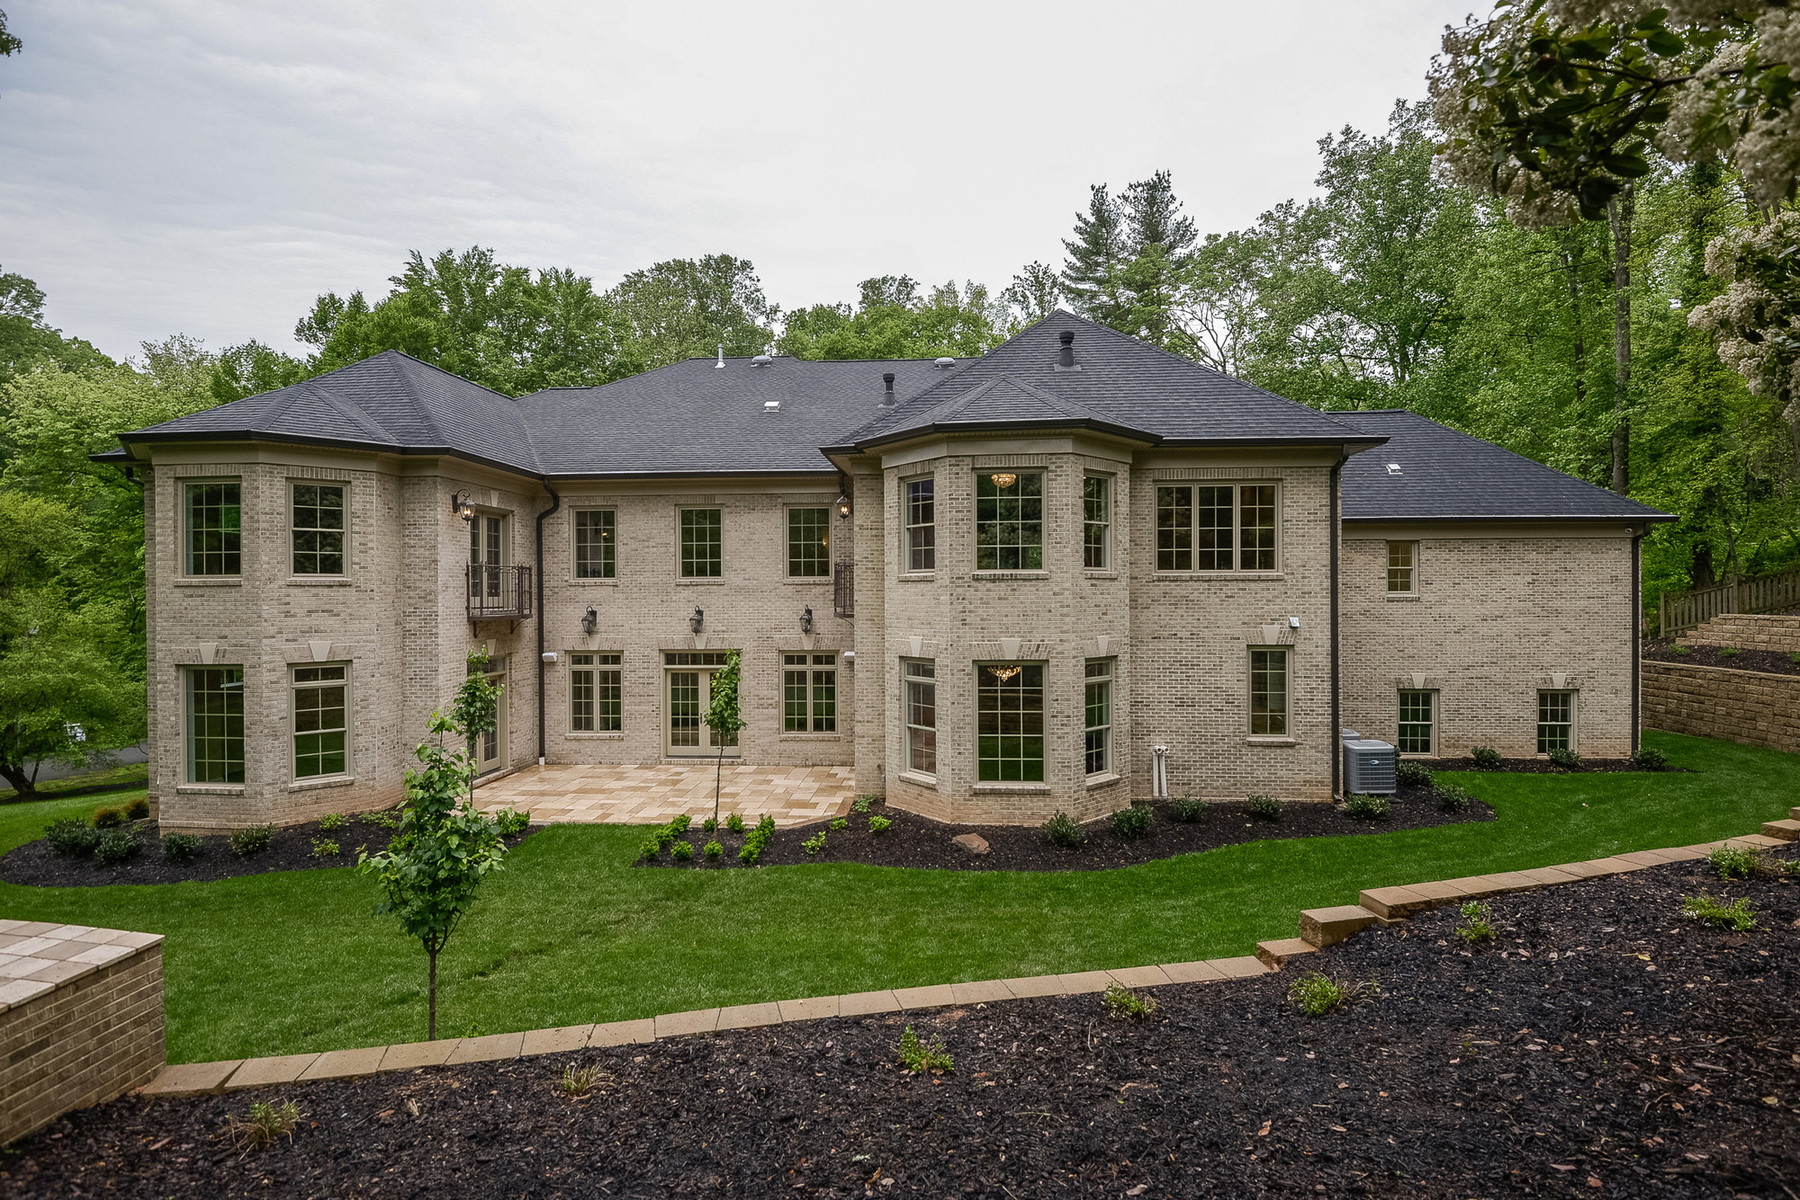 Additional photo for property listing at 6700 Lupine Lane, McLean 6700 Lupine Ln McLean, Virginia 22101 Estados Unidos